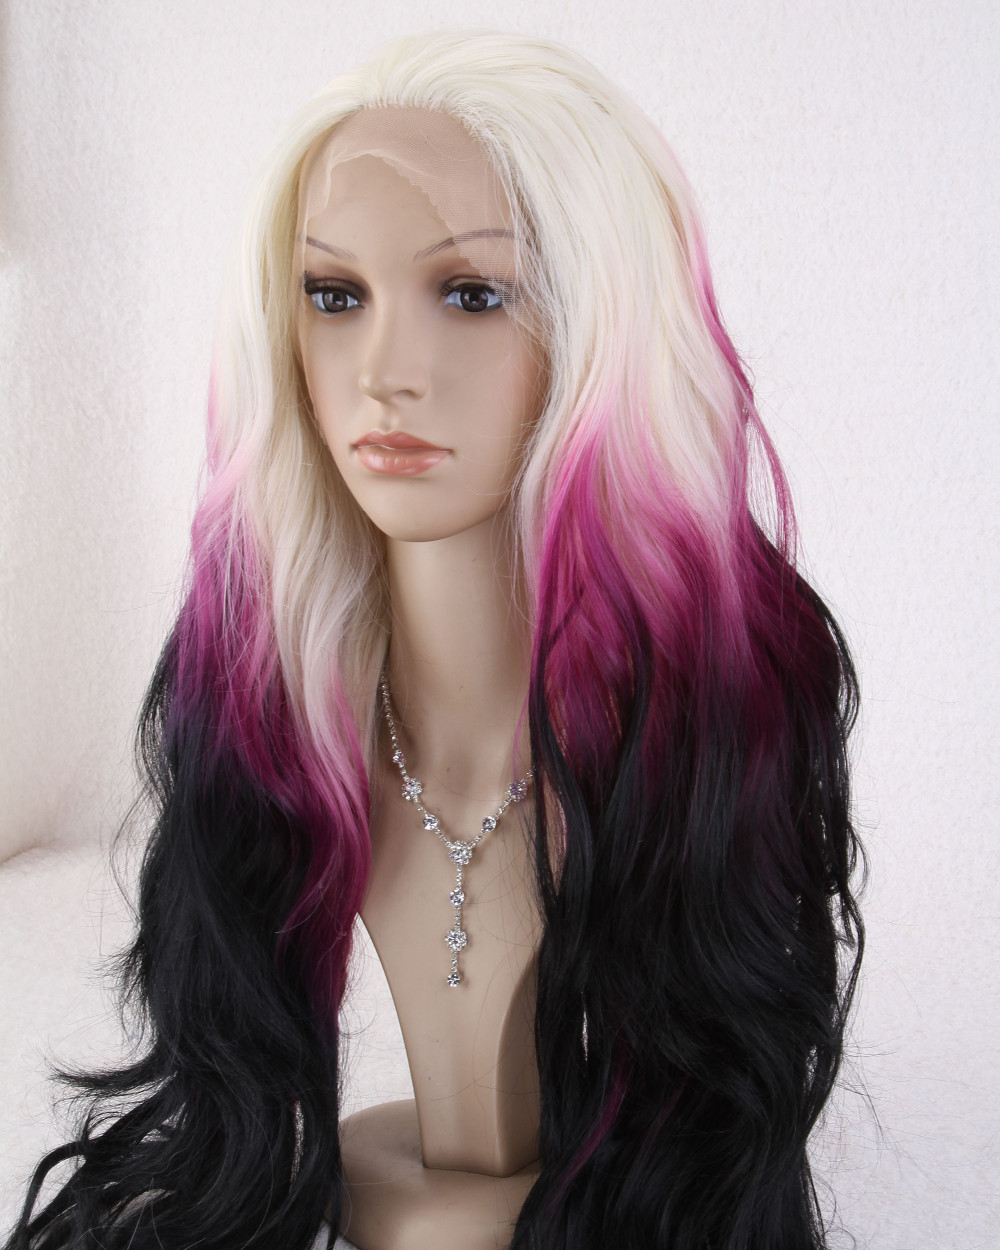 Long Anime Hairstyles For Girls: WigShow 2015 New Arrival 28 Inch Ladies Lace Front Long